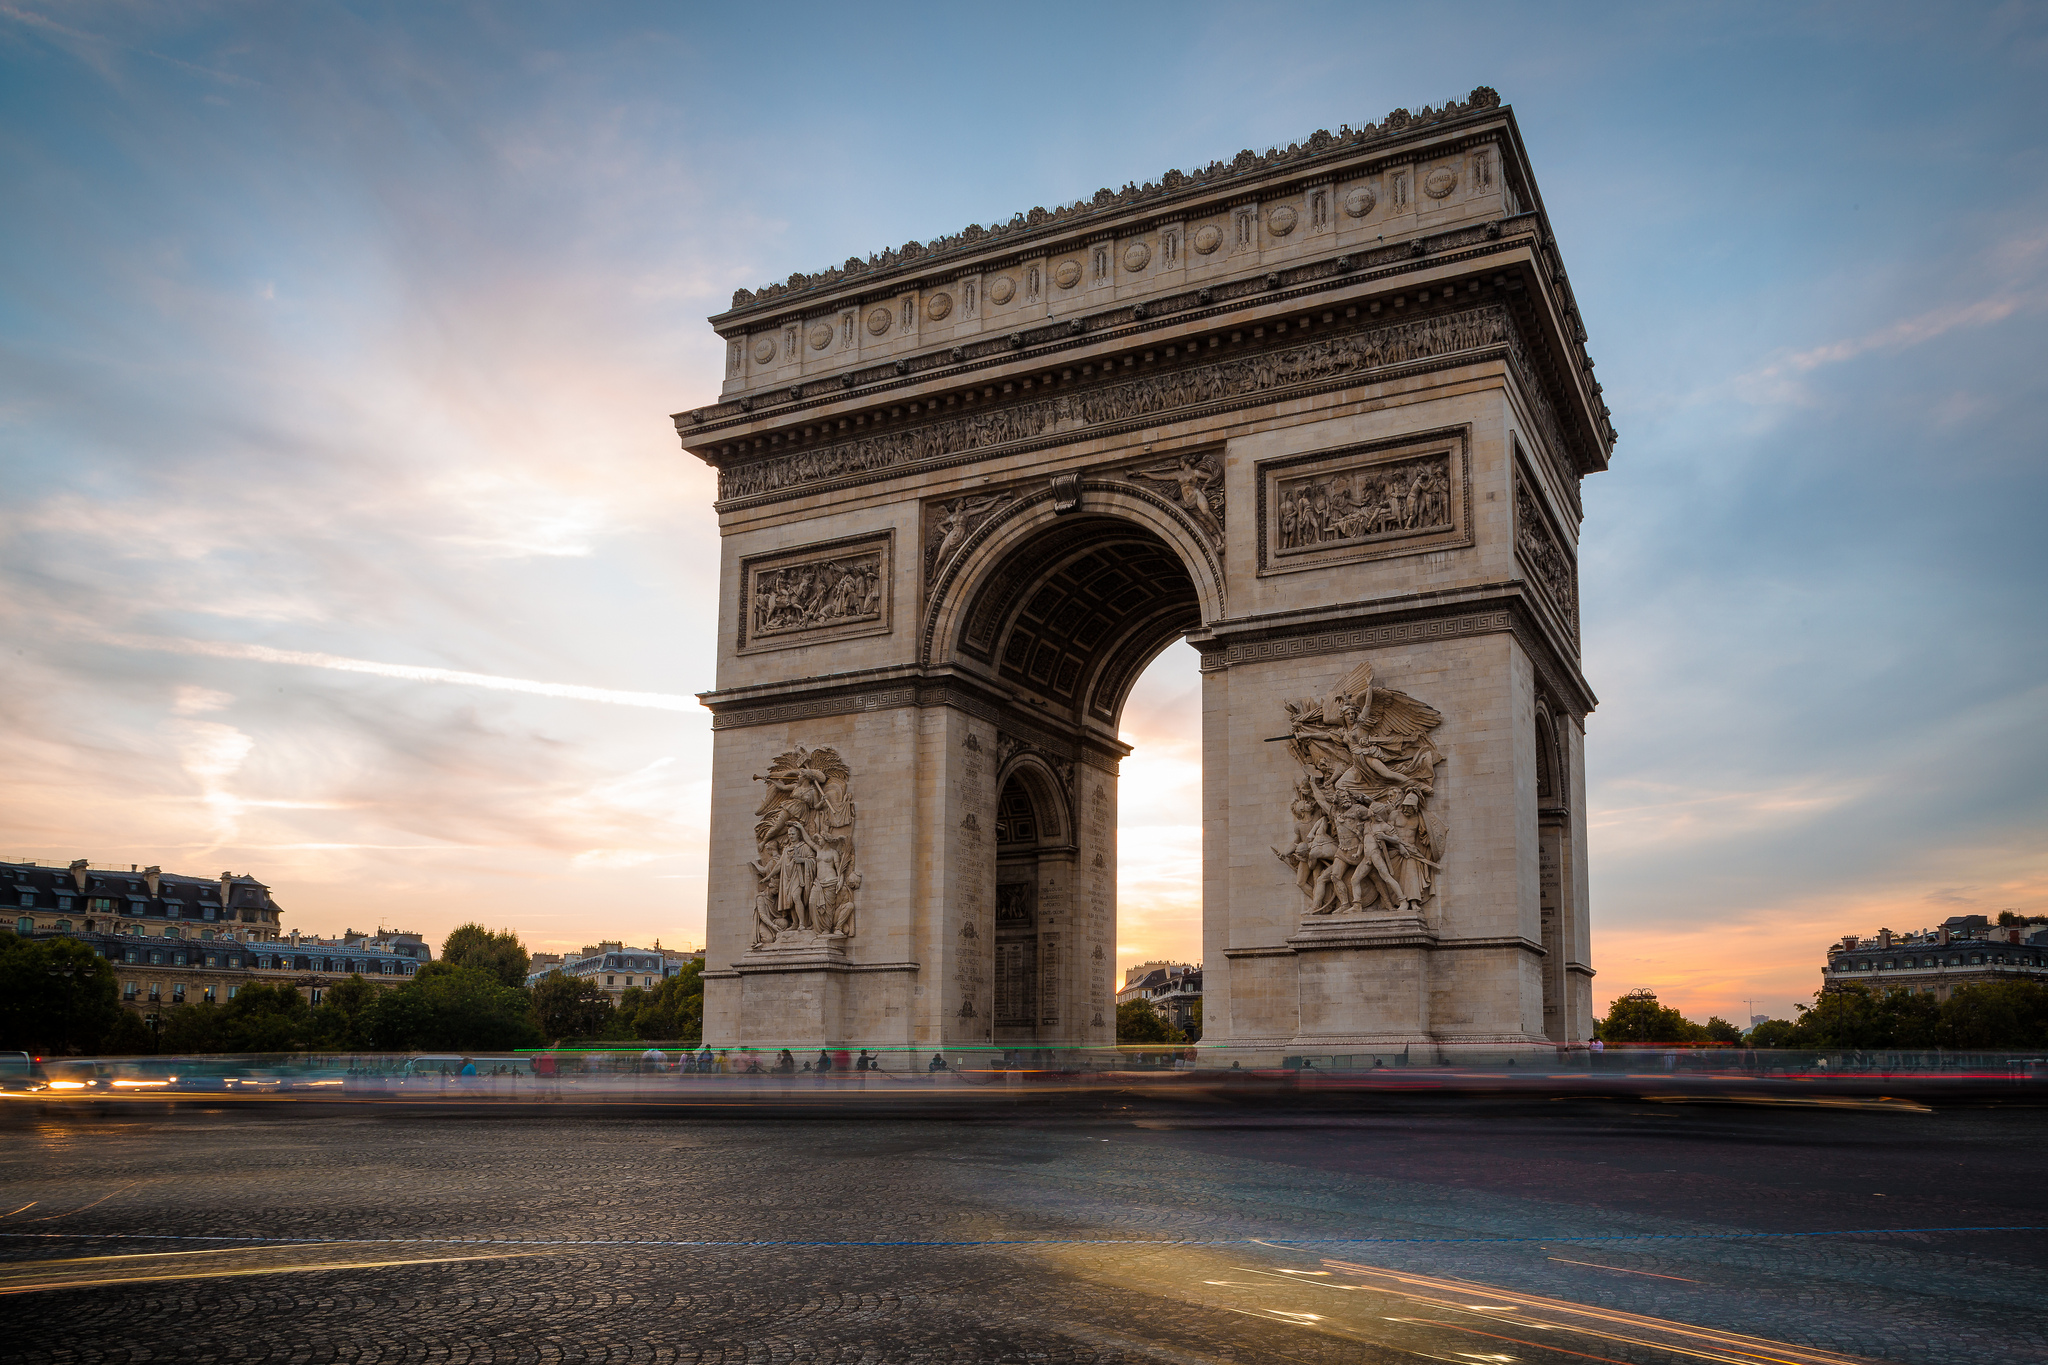 arc de triomphe monument in paris thousand wonders. Black Bedroom Furniture Sets. Home Design Ideas